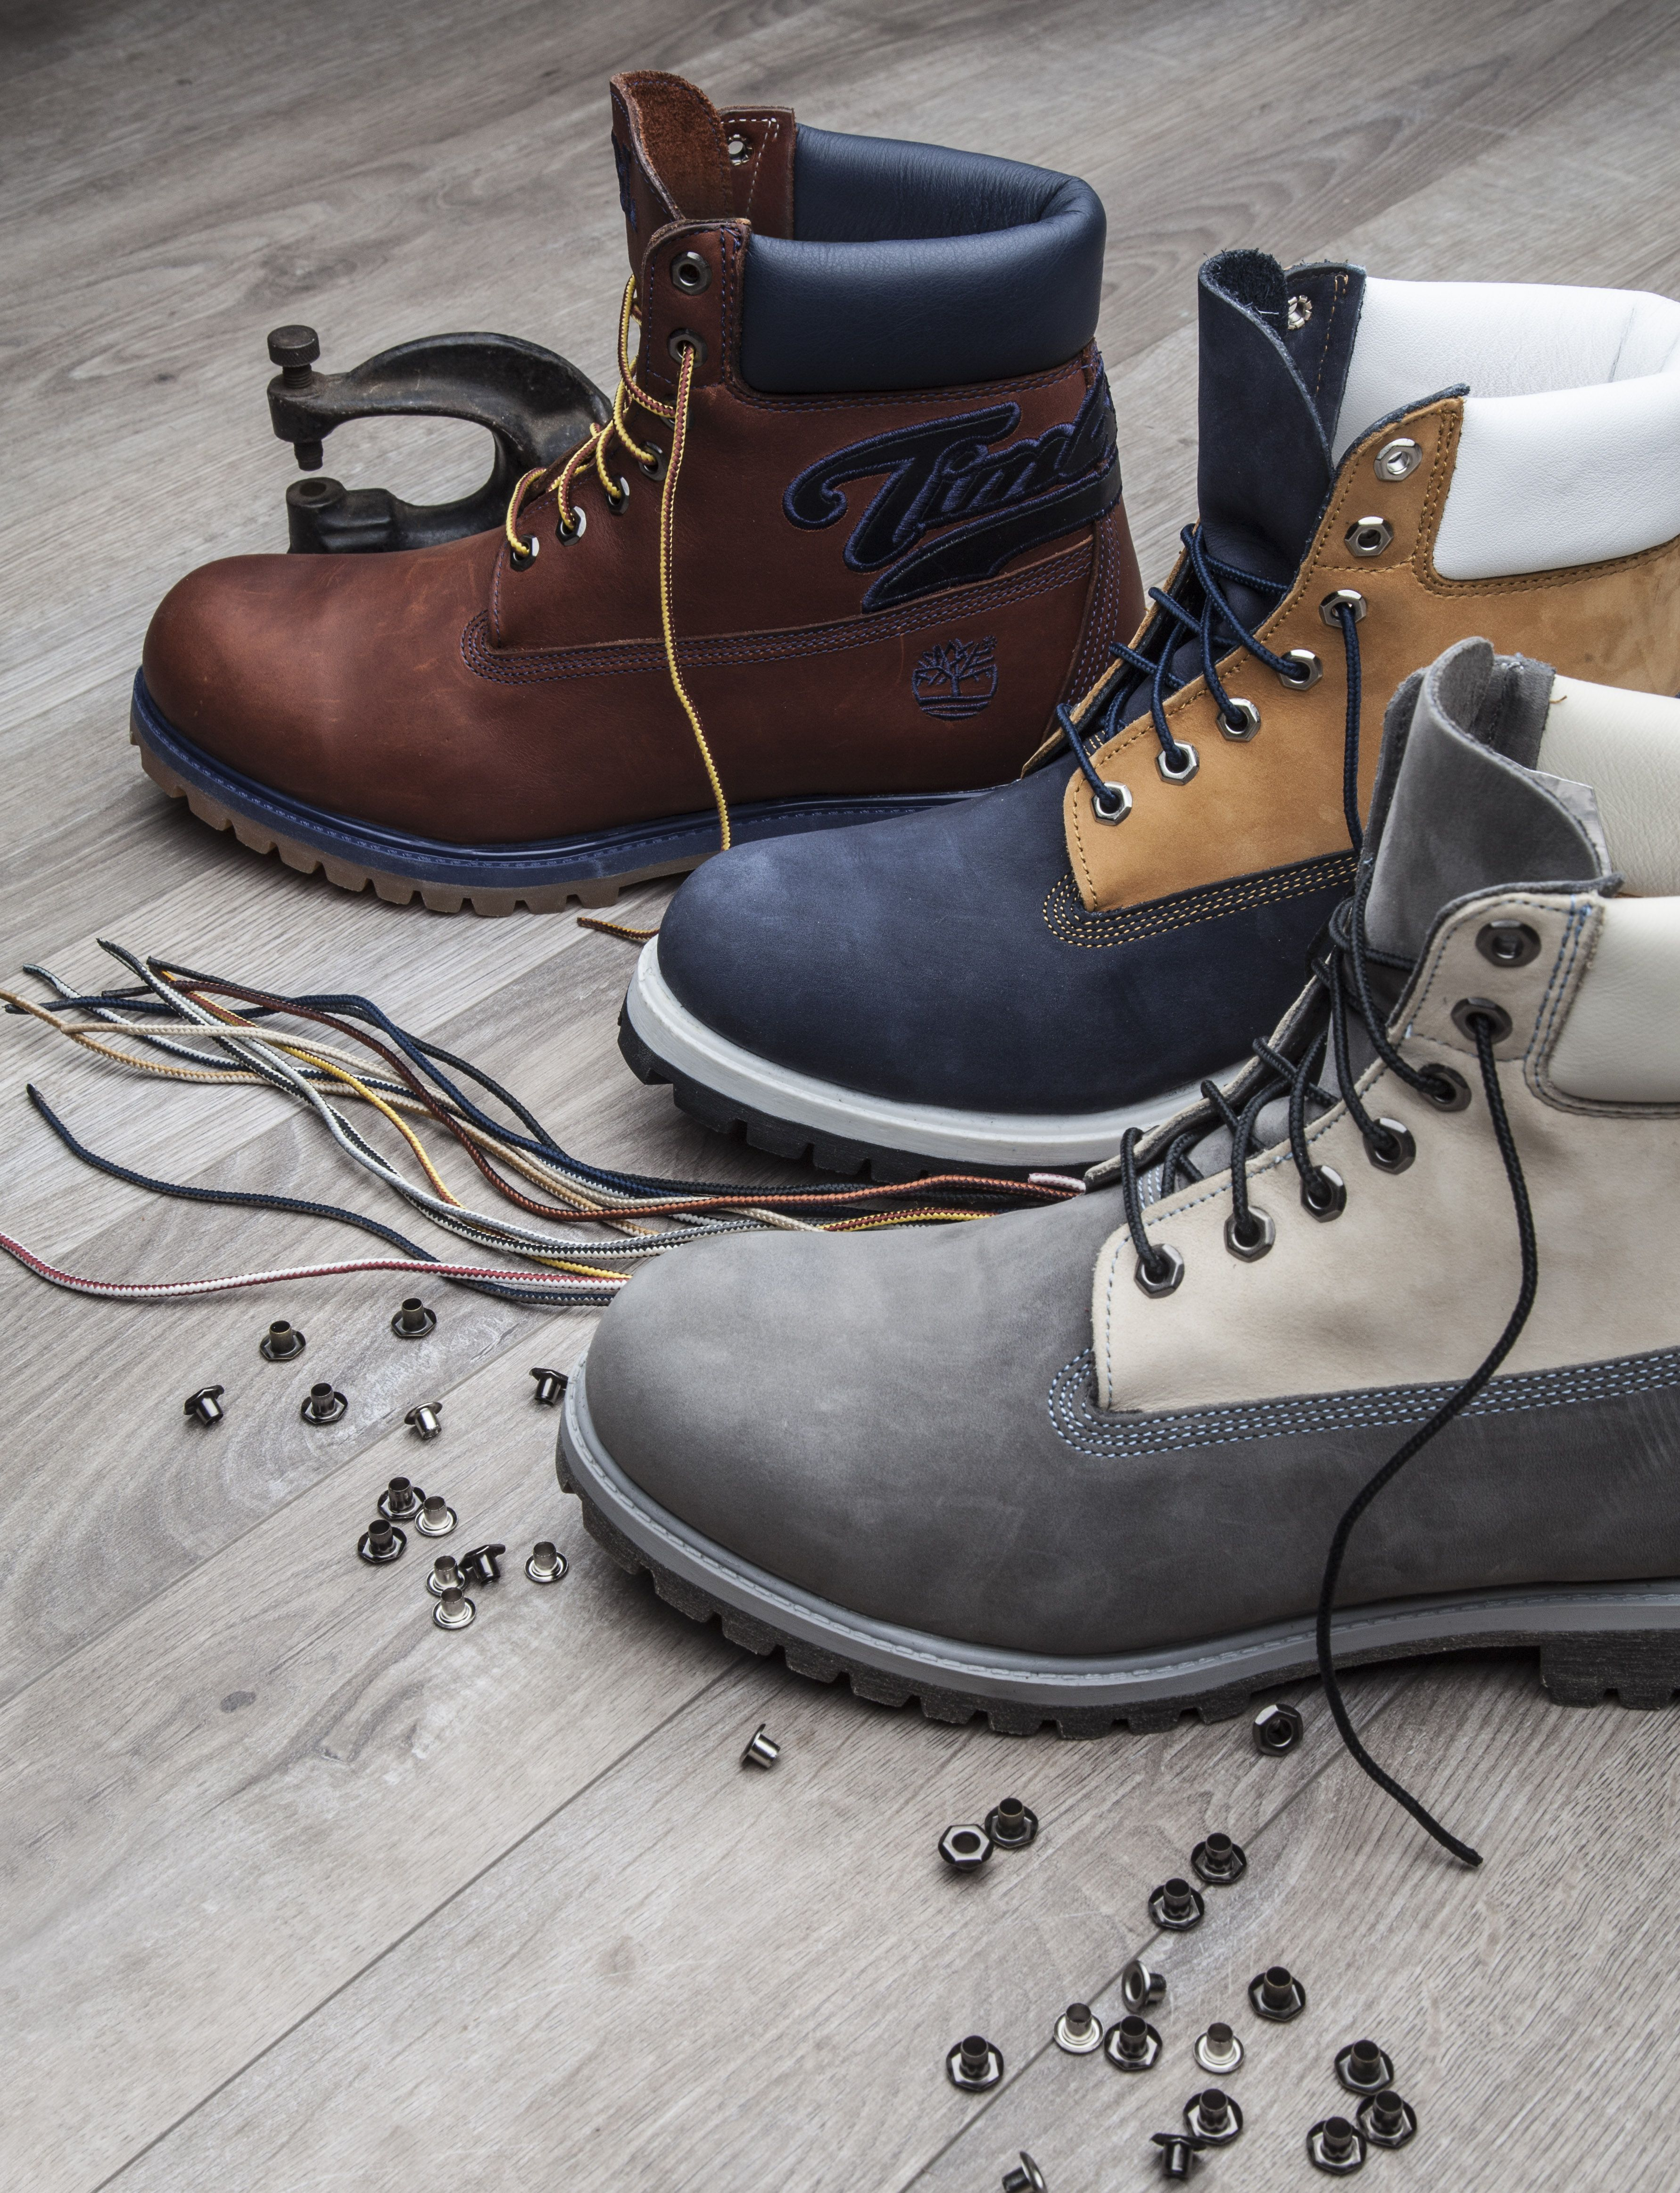 boots timberland, Boots, Timberlands shoes